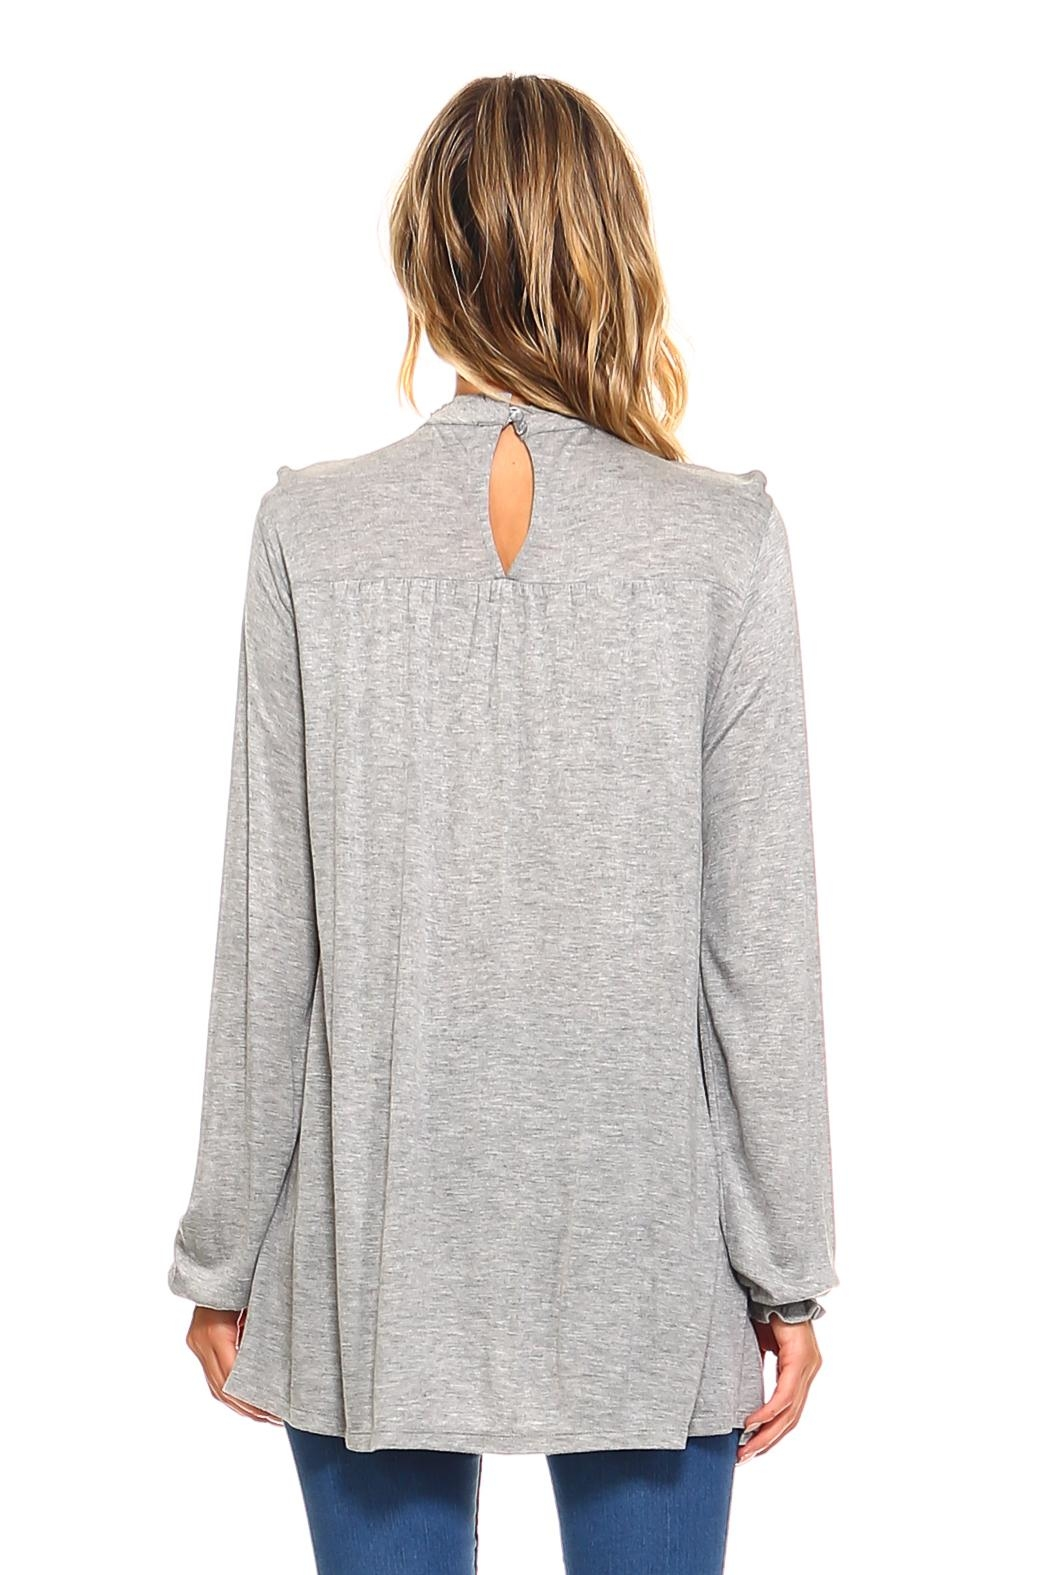 rxb Solid Knit Top - Side Cropped Image